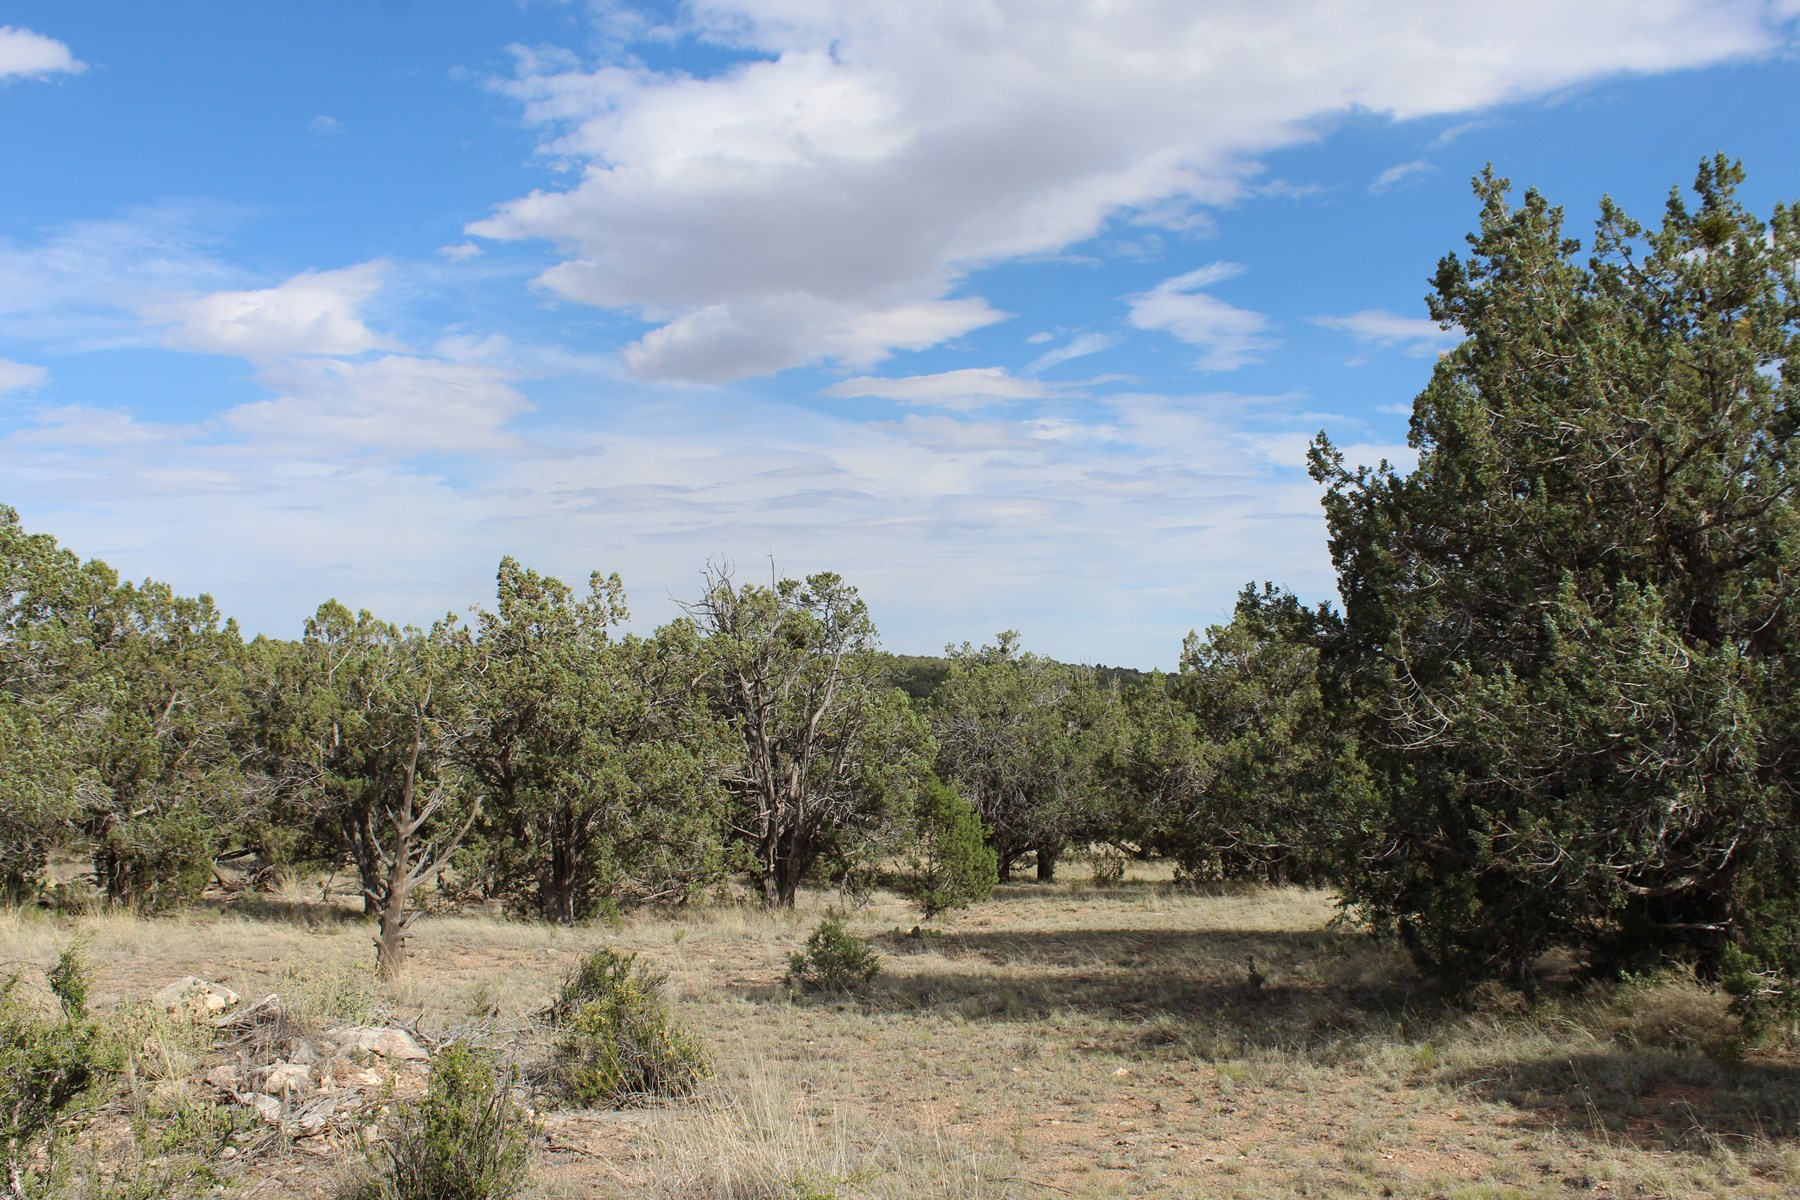 Remote Land with easy access Northern Arizona